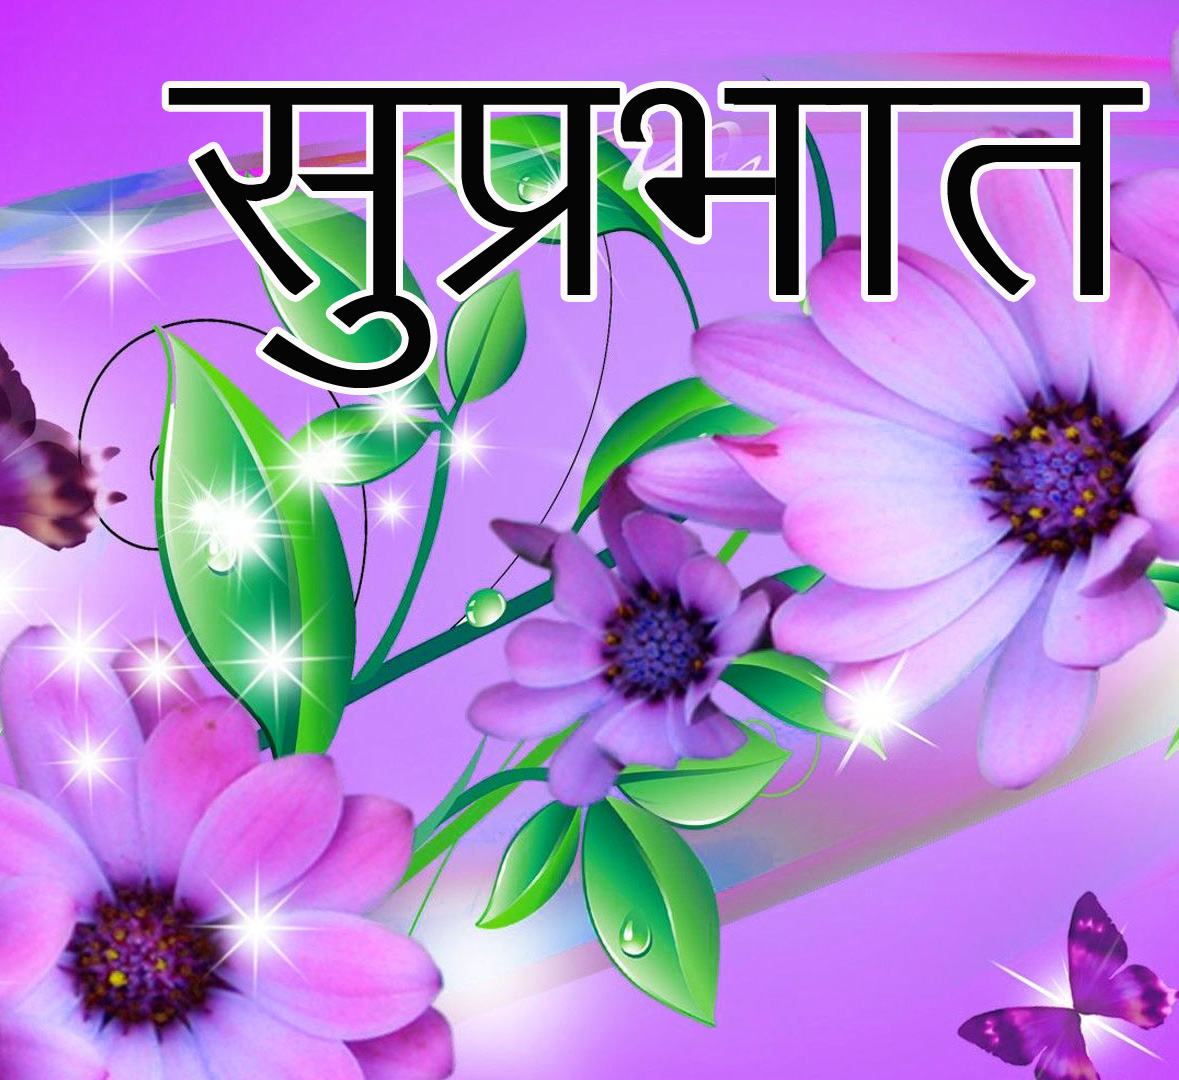 Friend-Flower-Suprabhat-Images-13